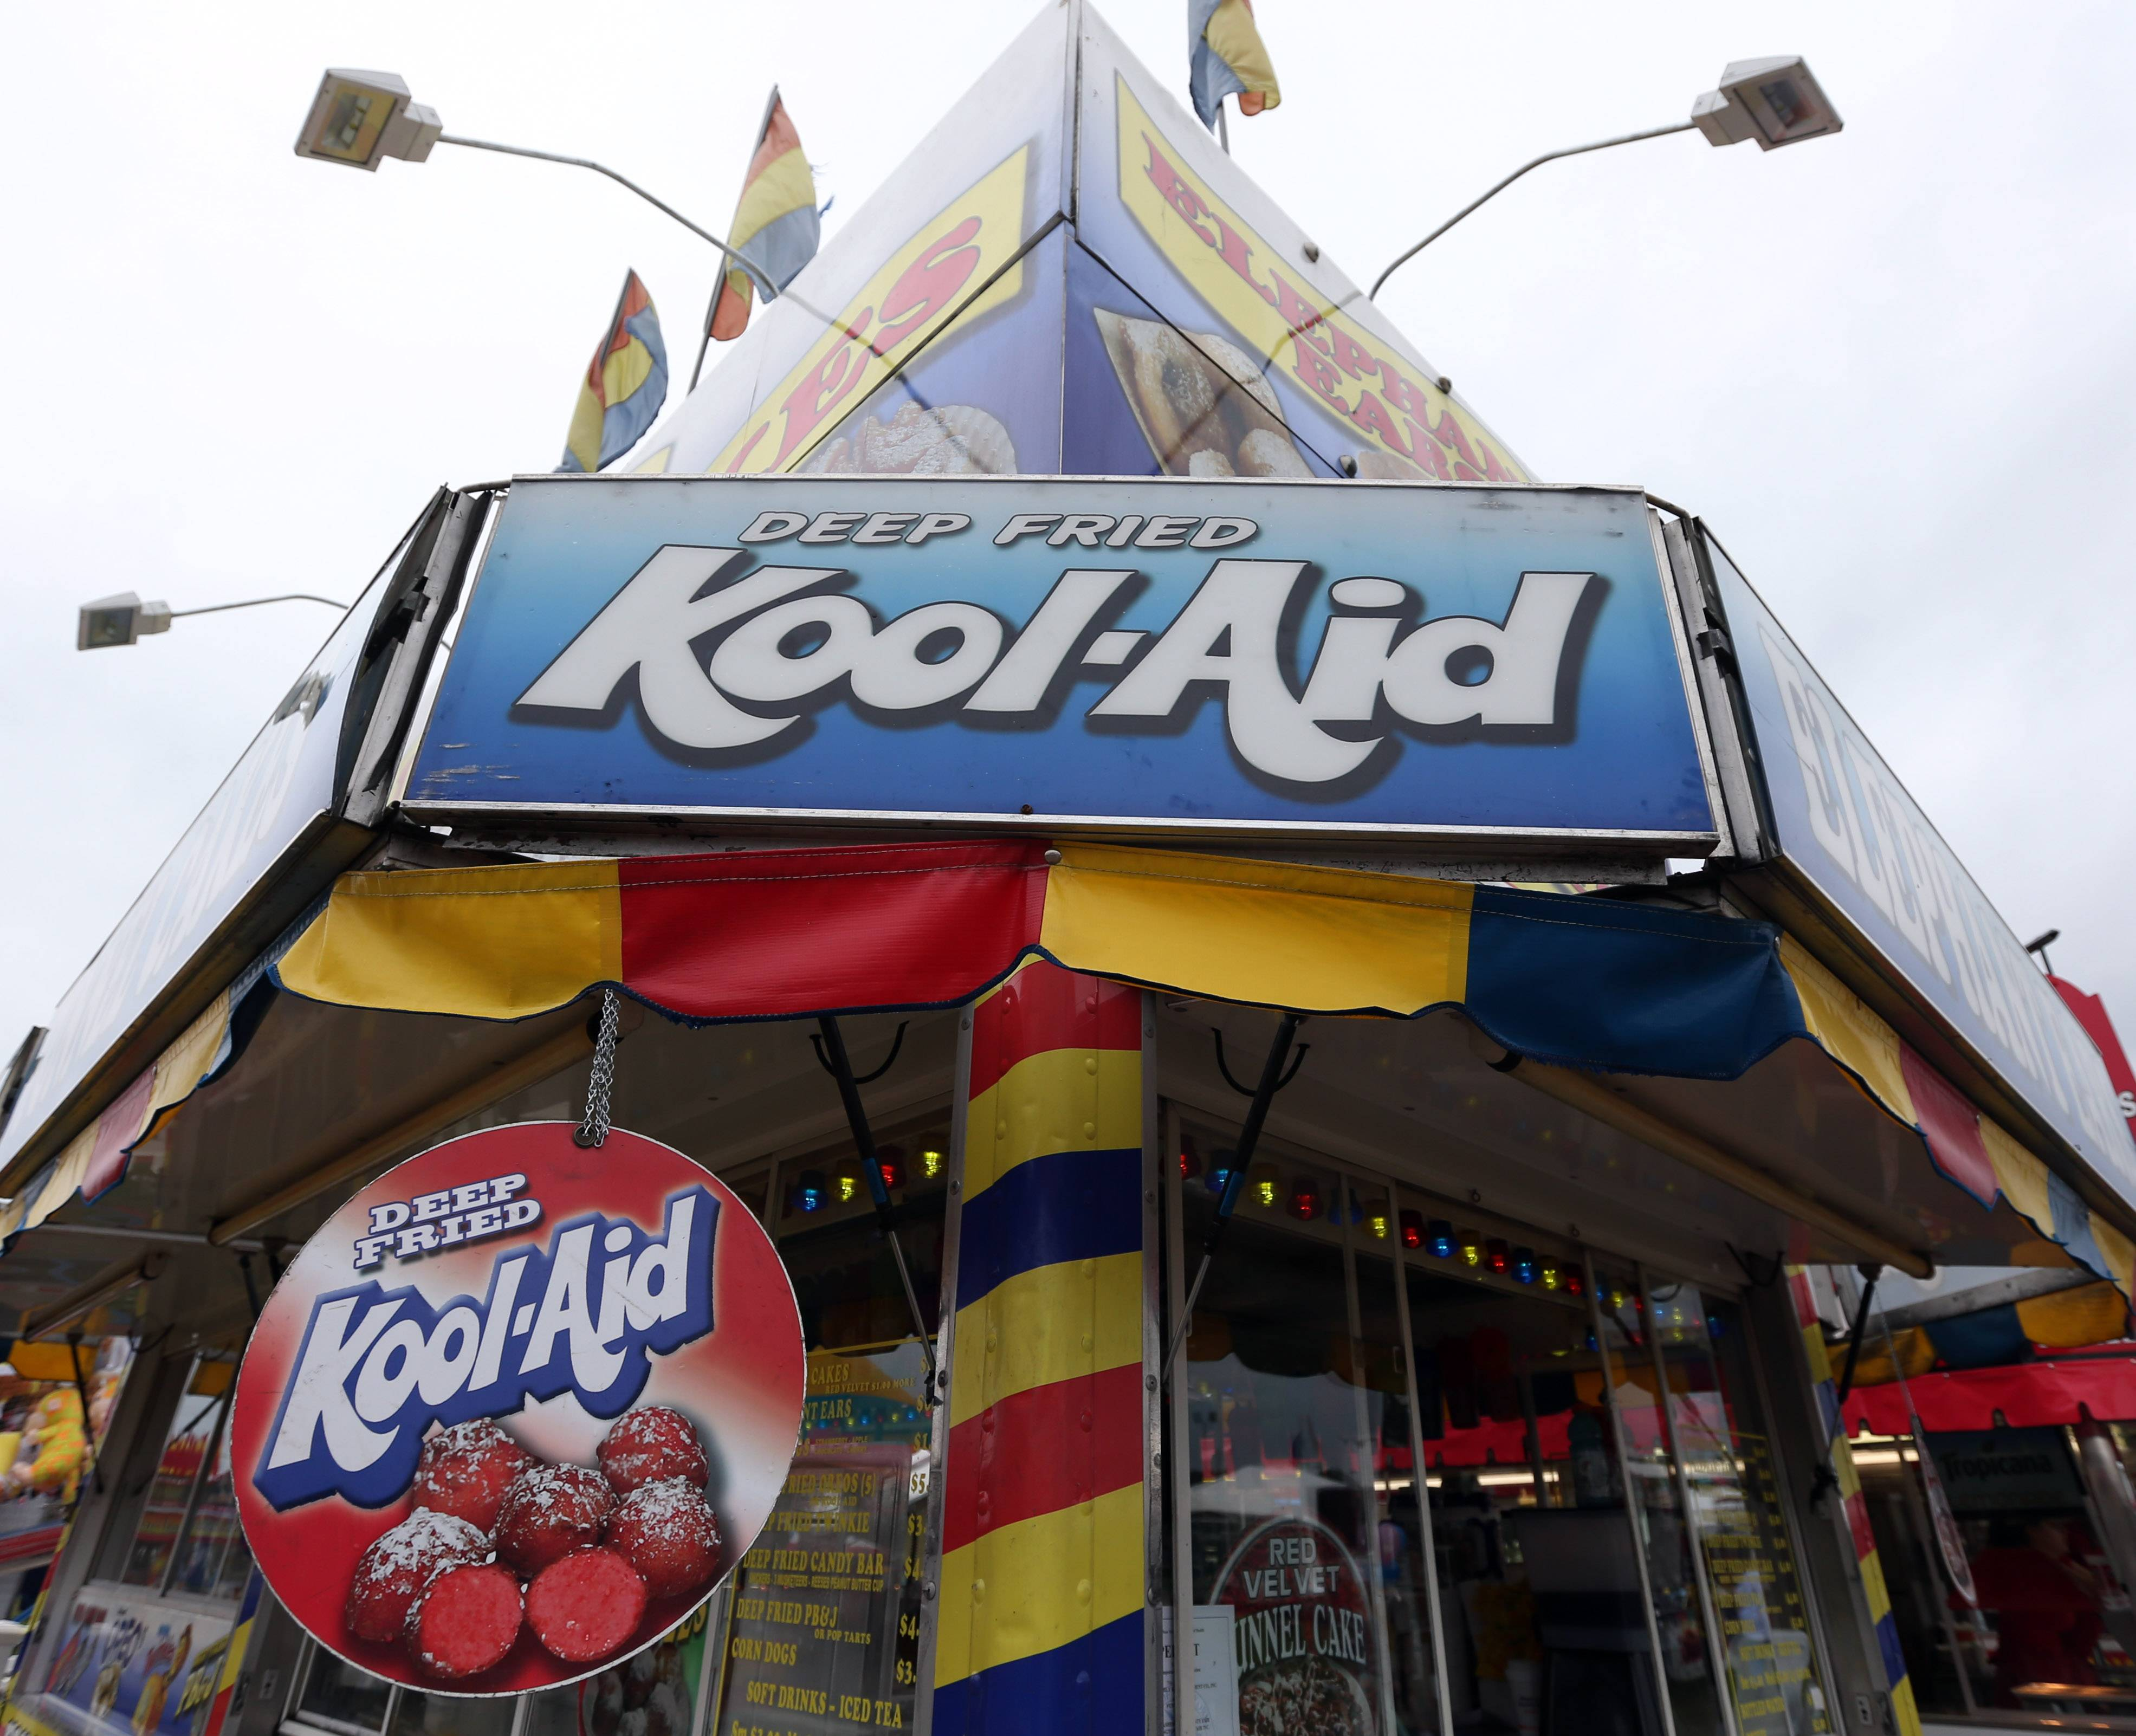 A sign advertises deep-fried Kool-Aid at a food vendor at the Washington County Fair last week in Greenwich, N.Y. The creators of fair concoctions say they work all year to outdo themselves and the other vendors vying for the attention of an ever more expectant public.